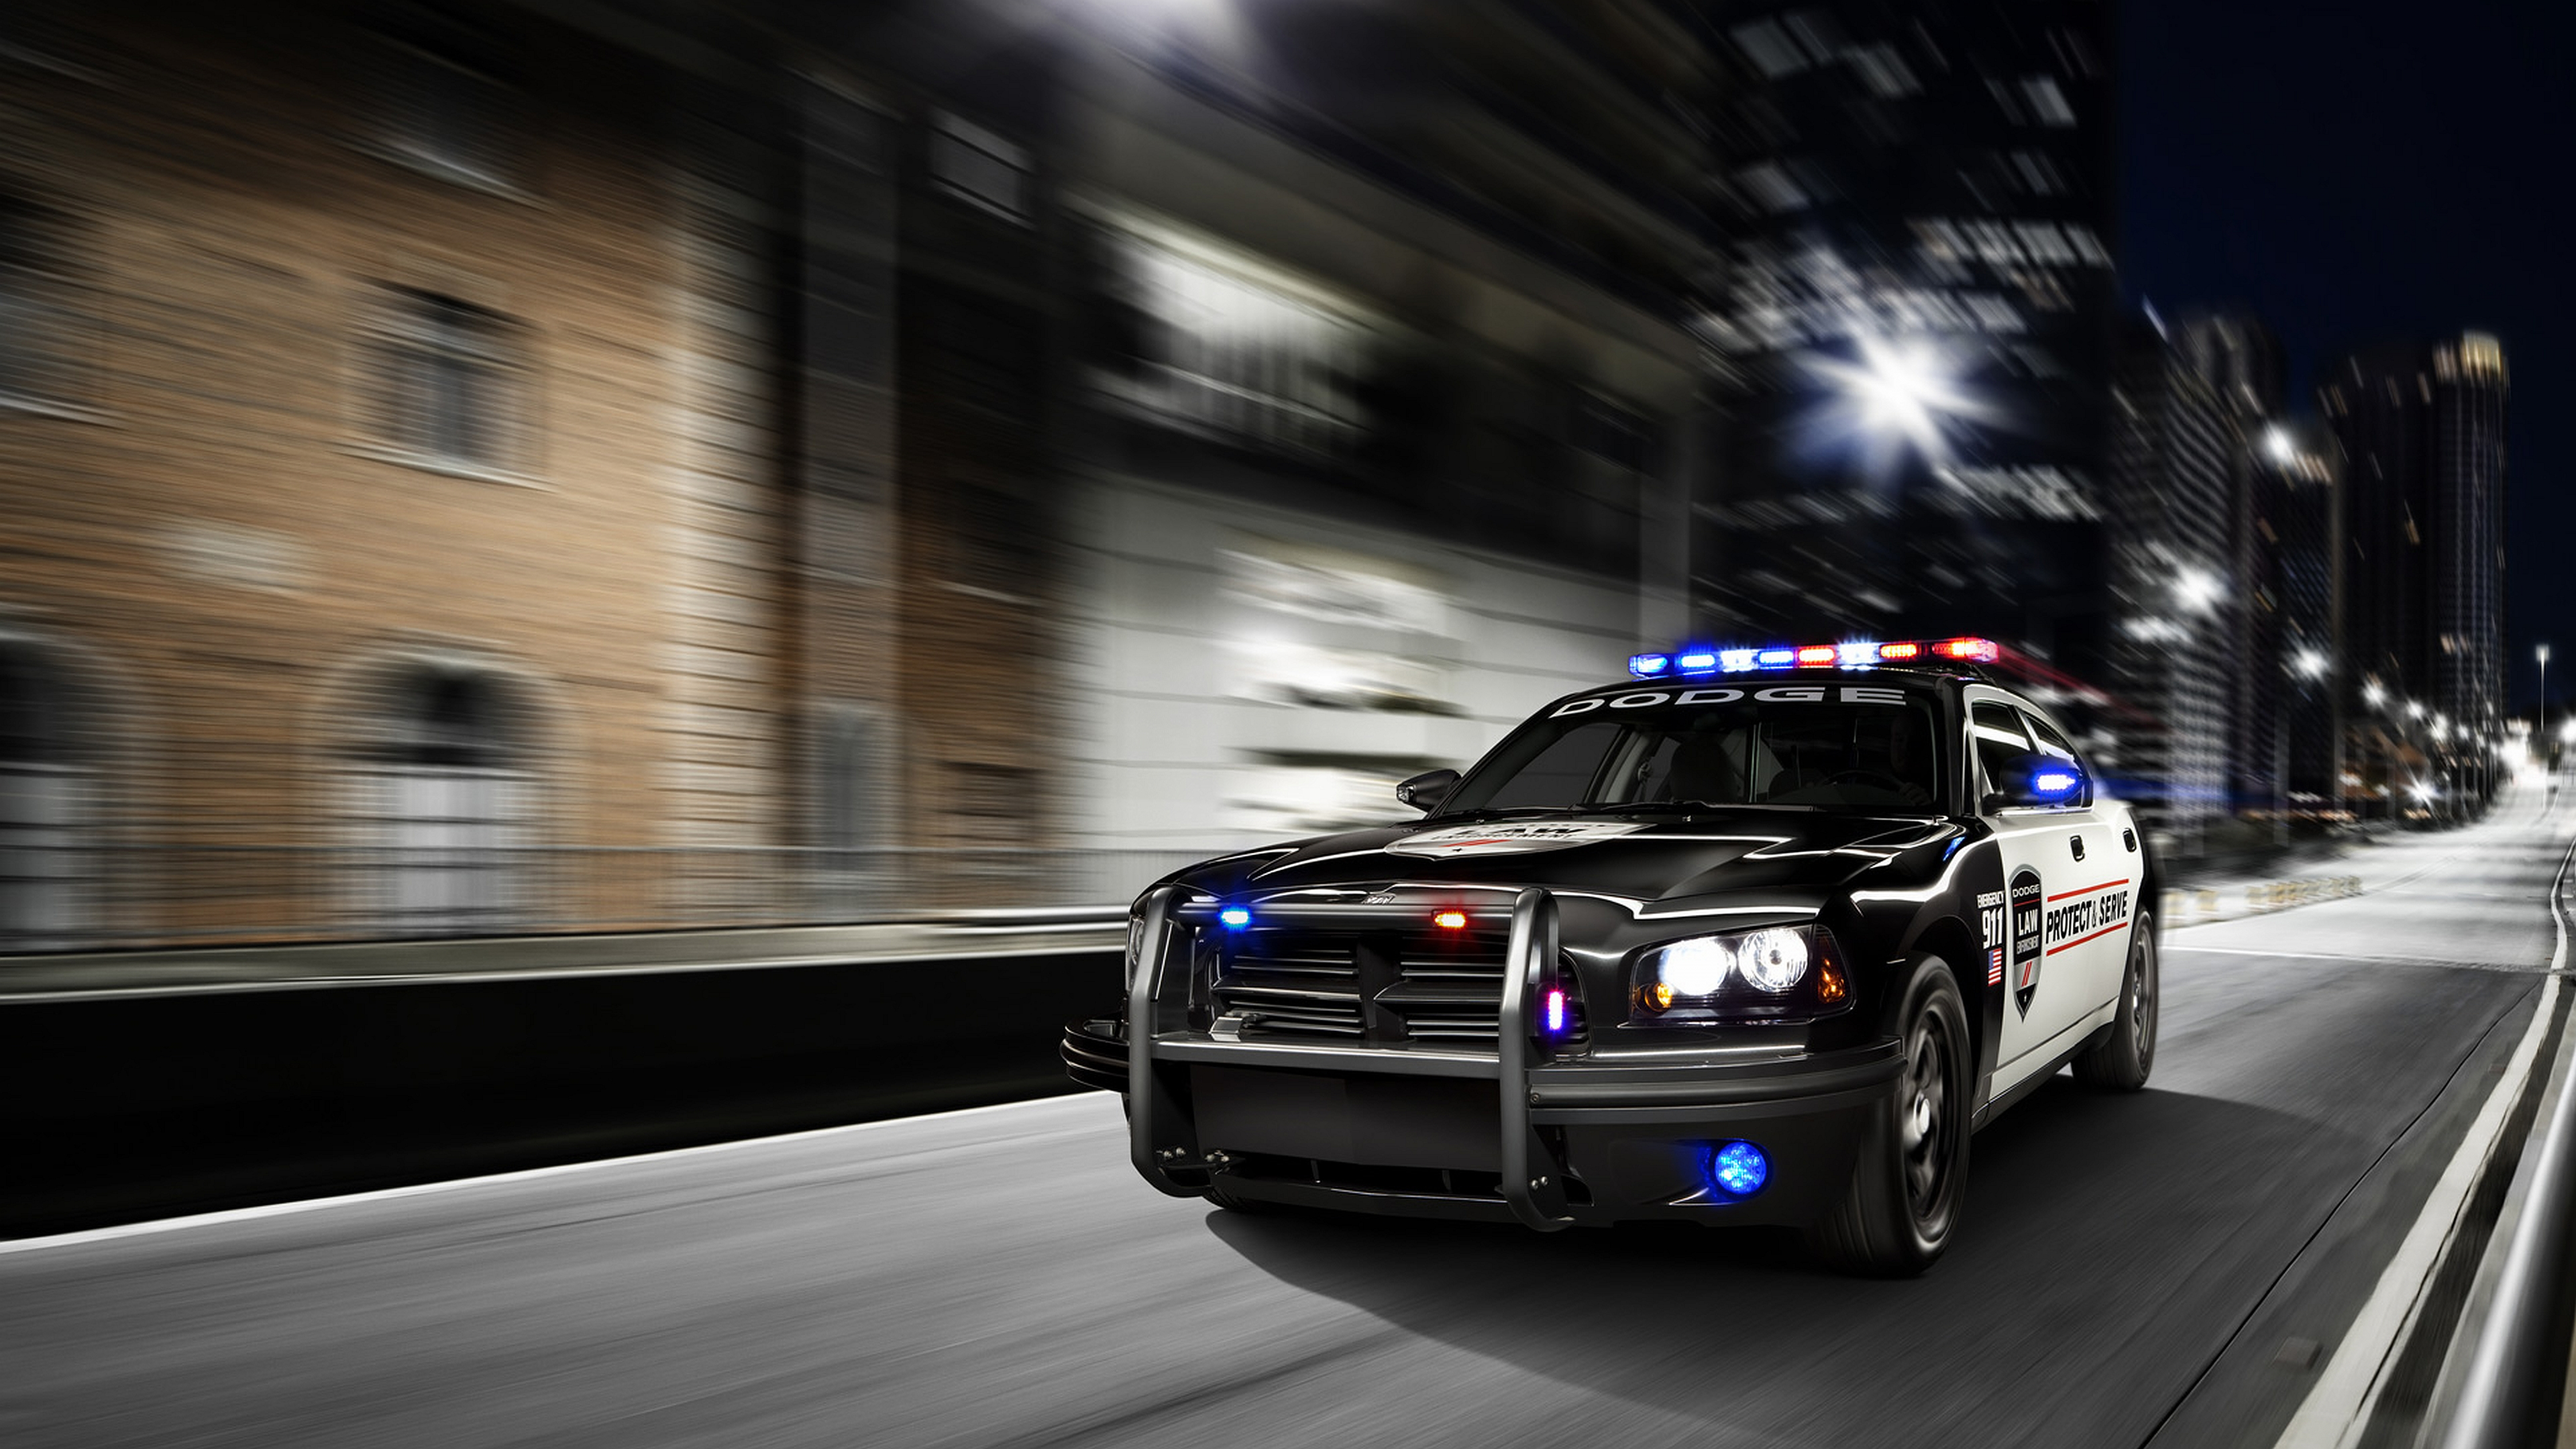 Wallpaper Of Police